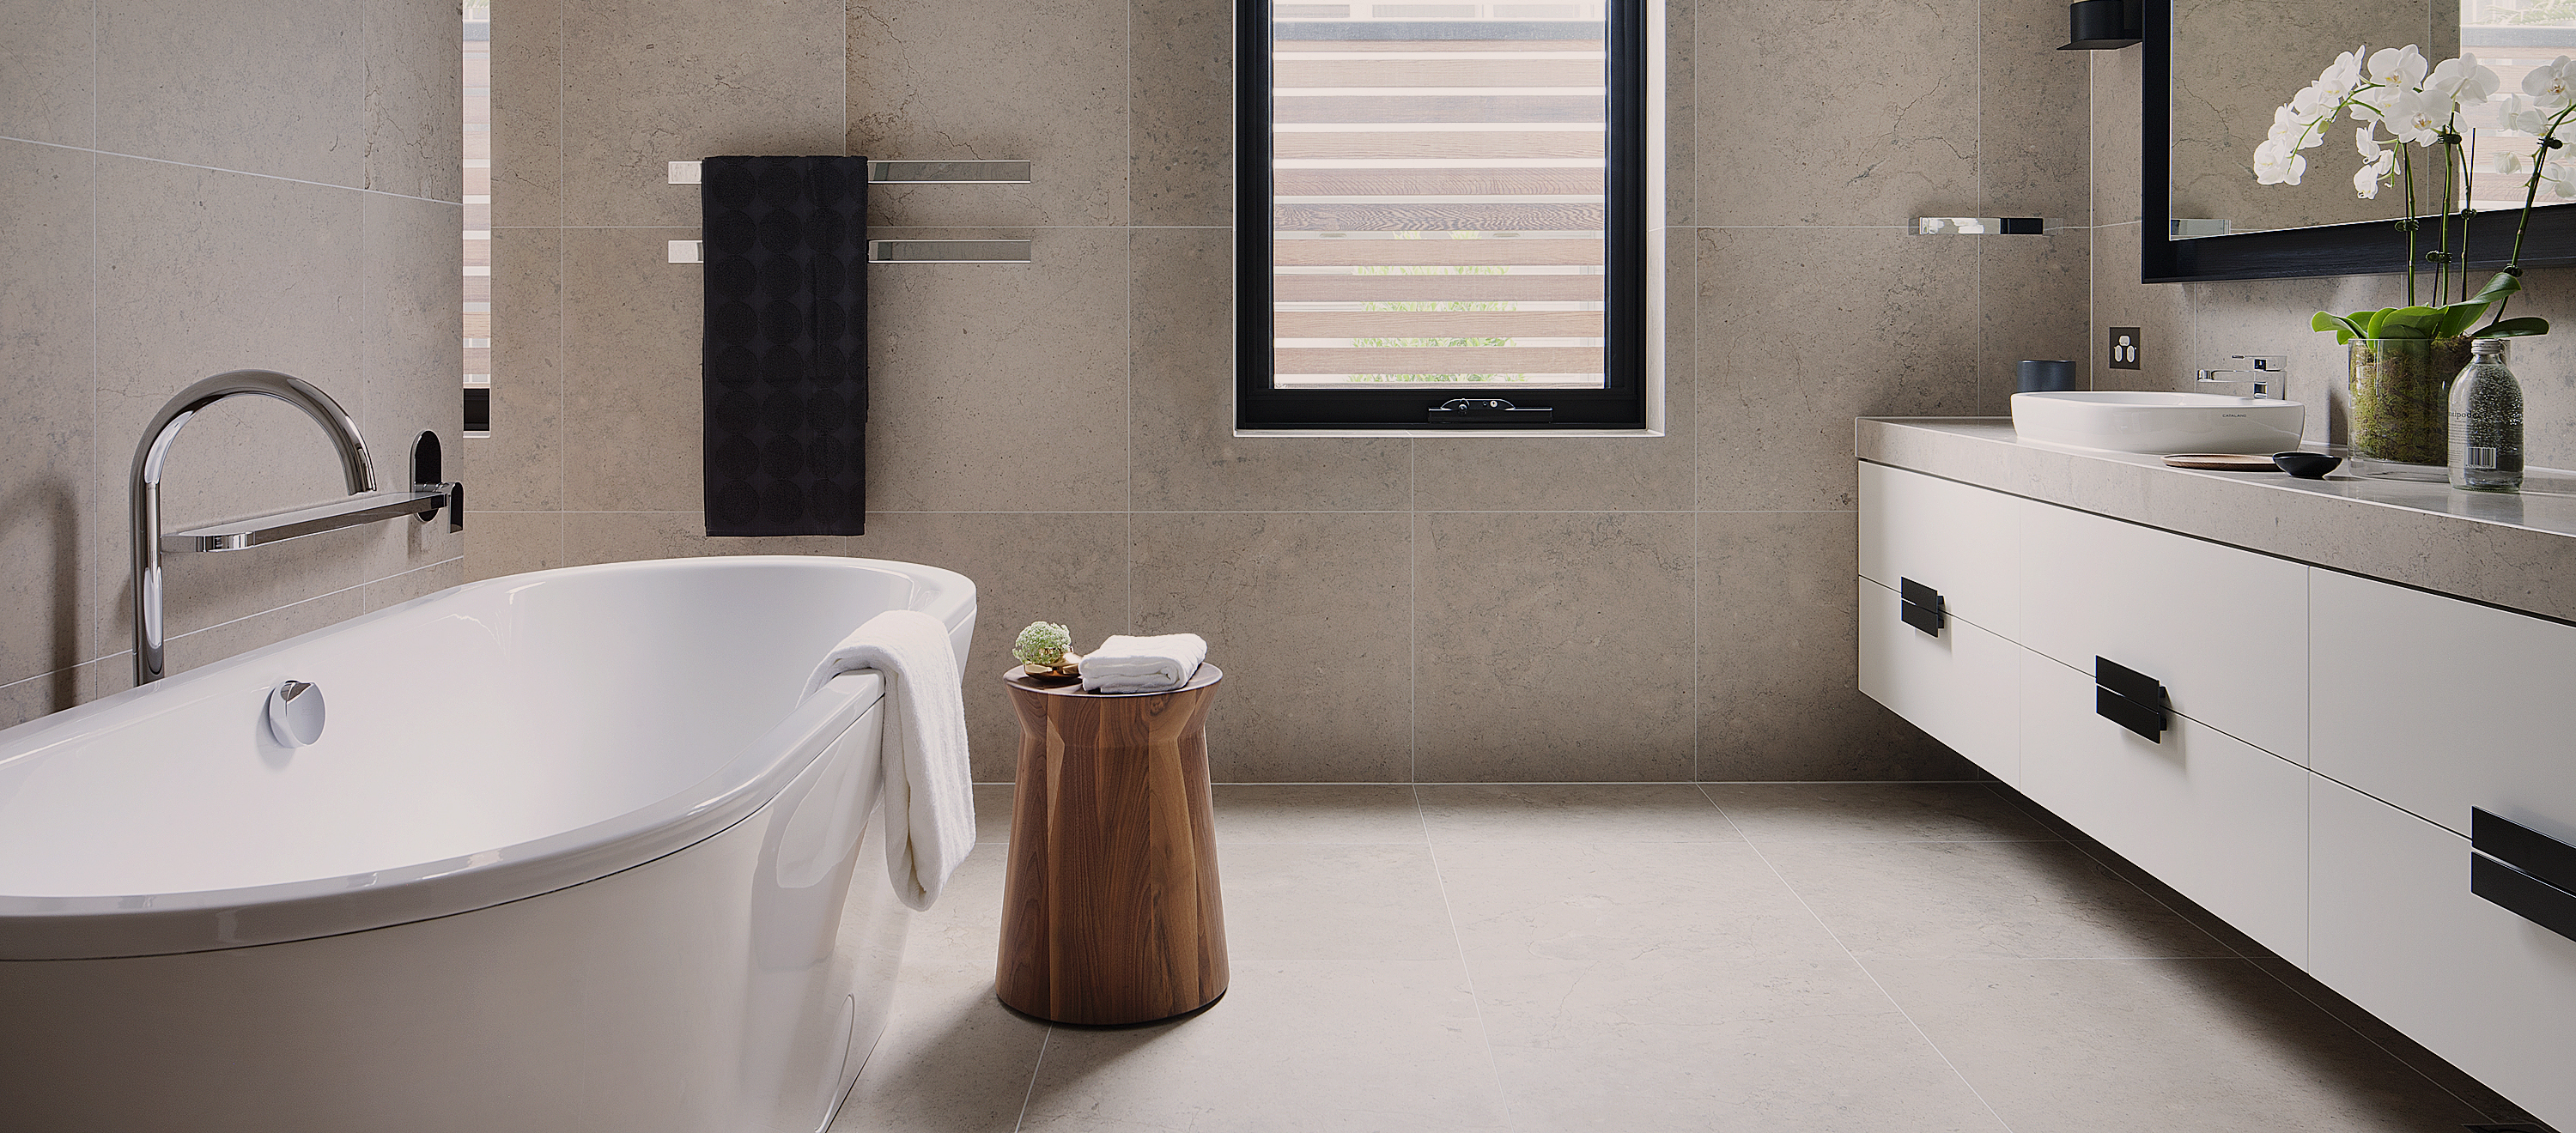 Exquisite tile and stone solutions for Melbourne's leading builders, developers & architects.